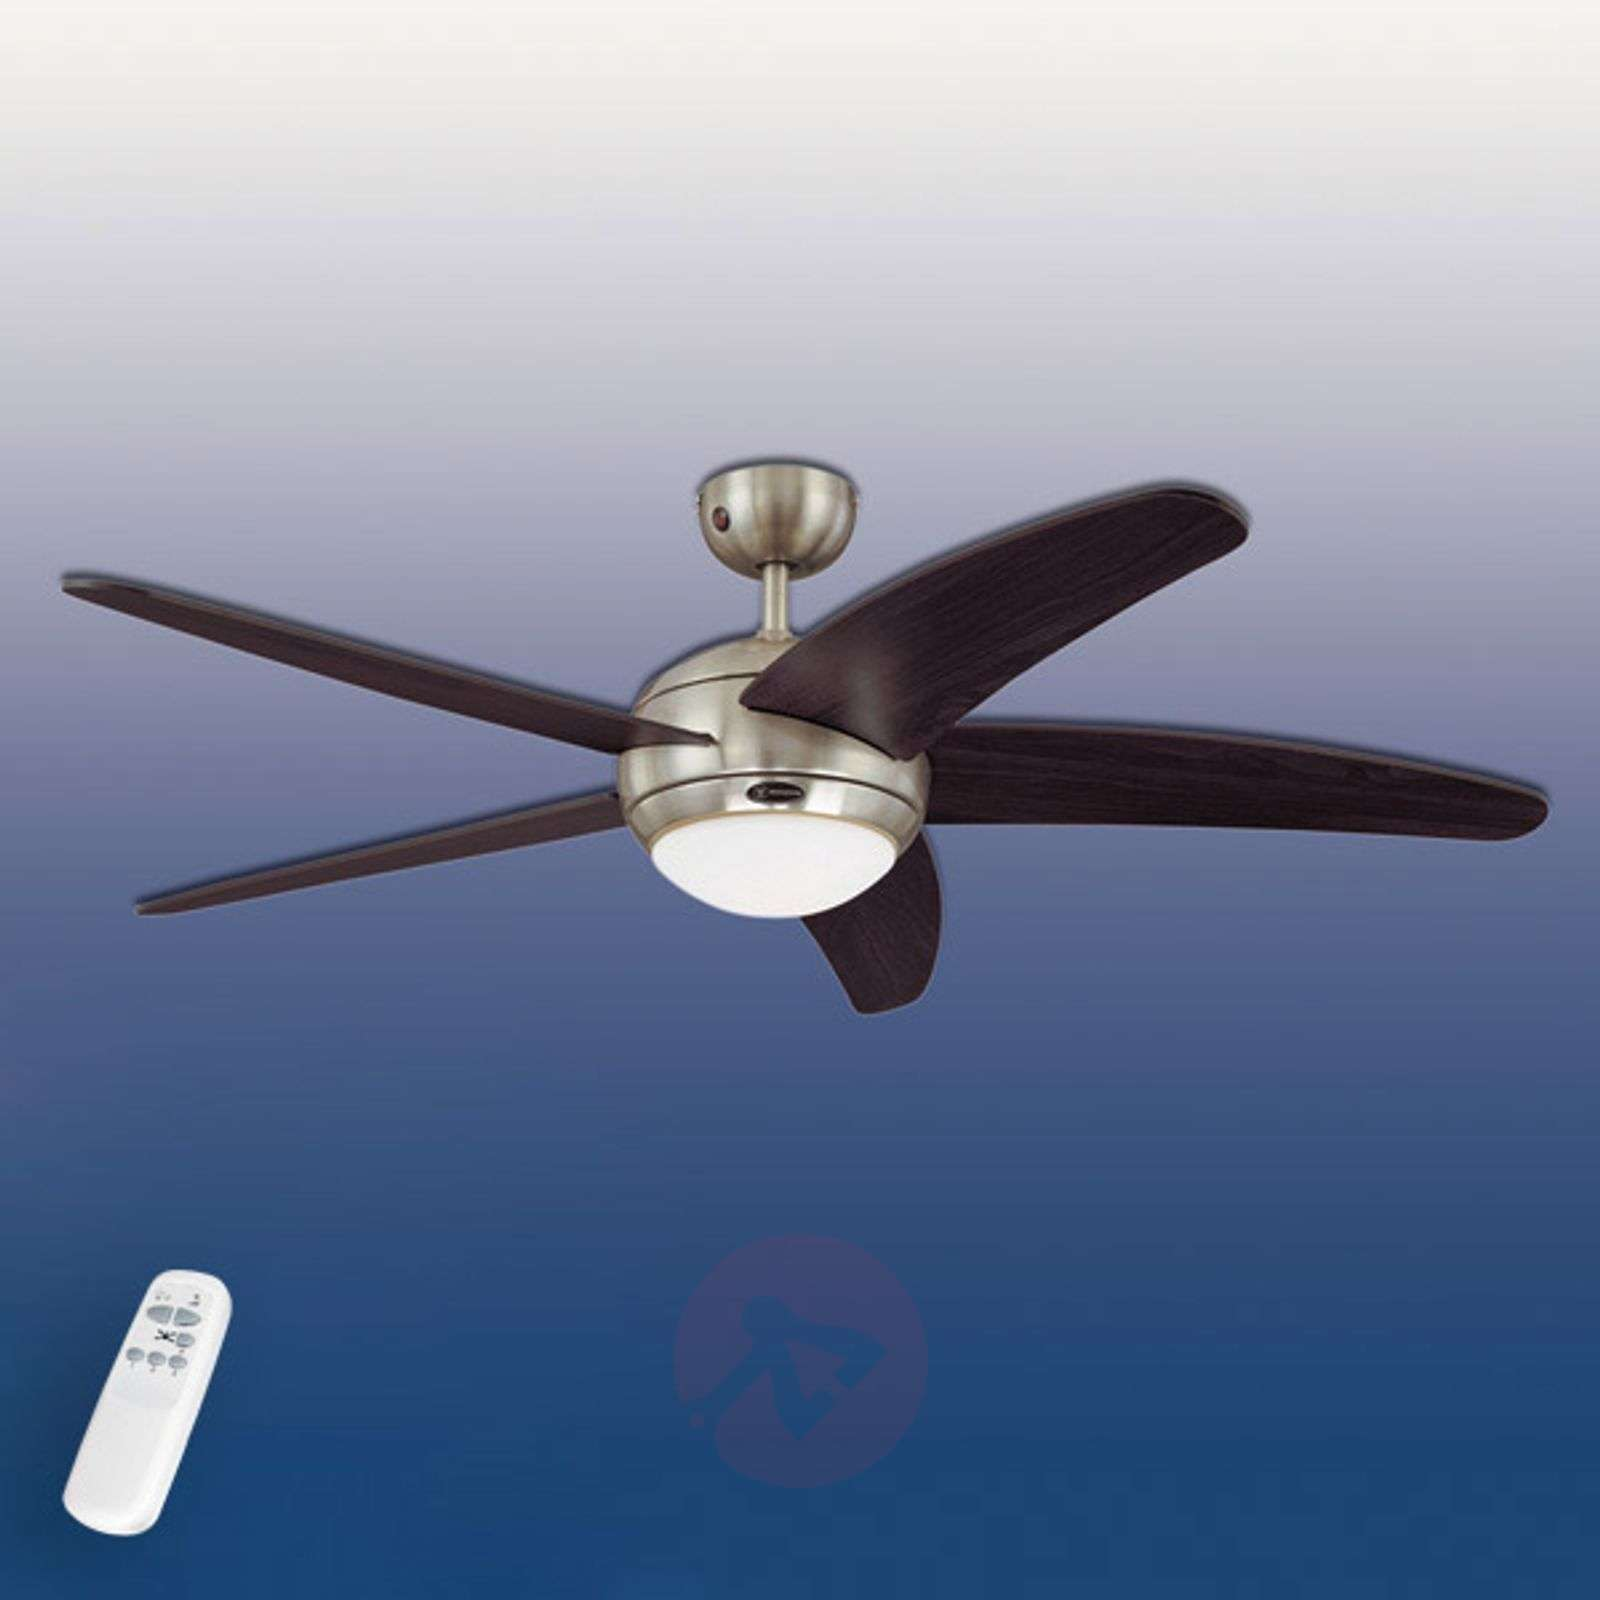 Bedan ceiling fan with remote control-9602177-06